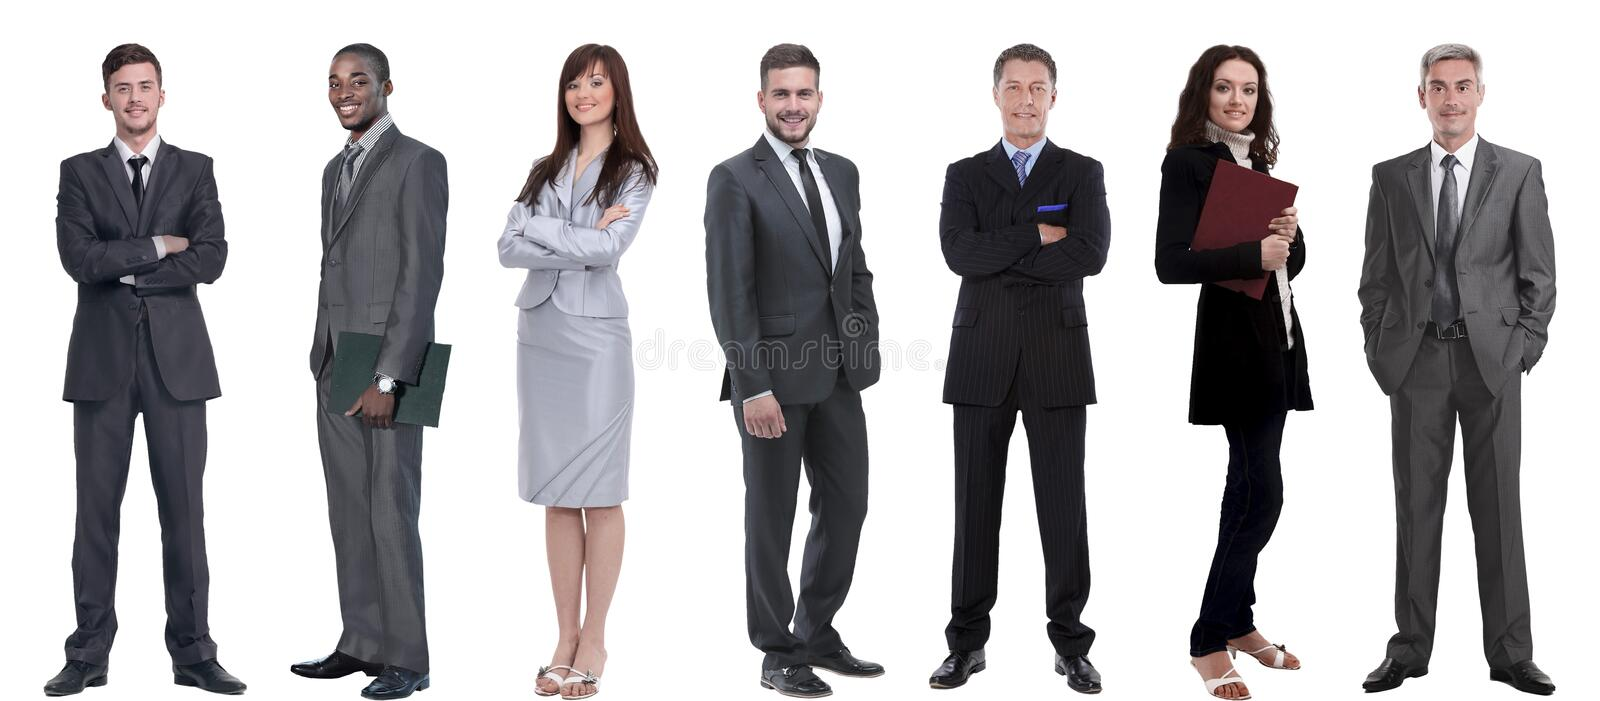 Group of successful business people standing in a row. stock images